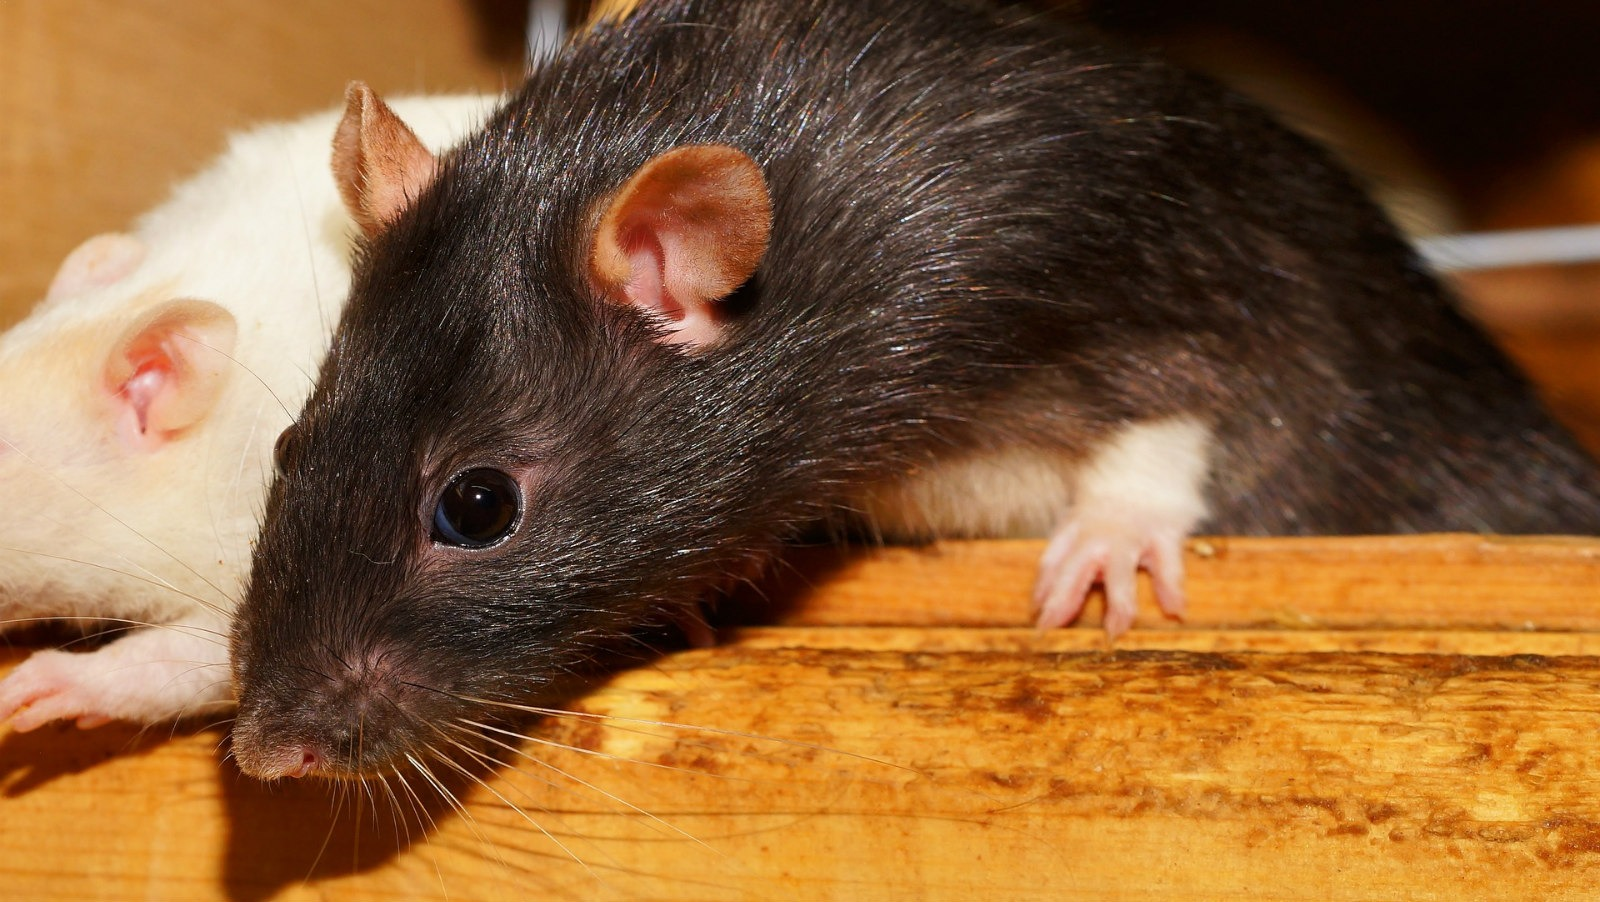 Can I Keep Rats and other pets